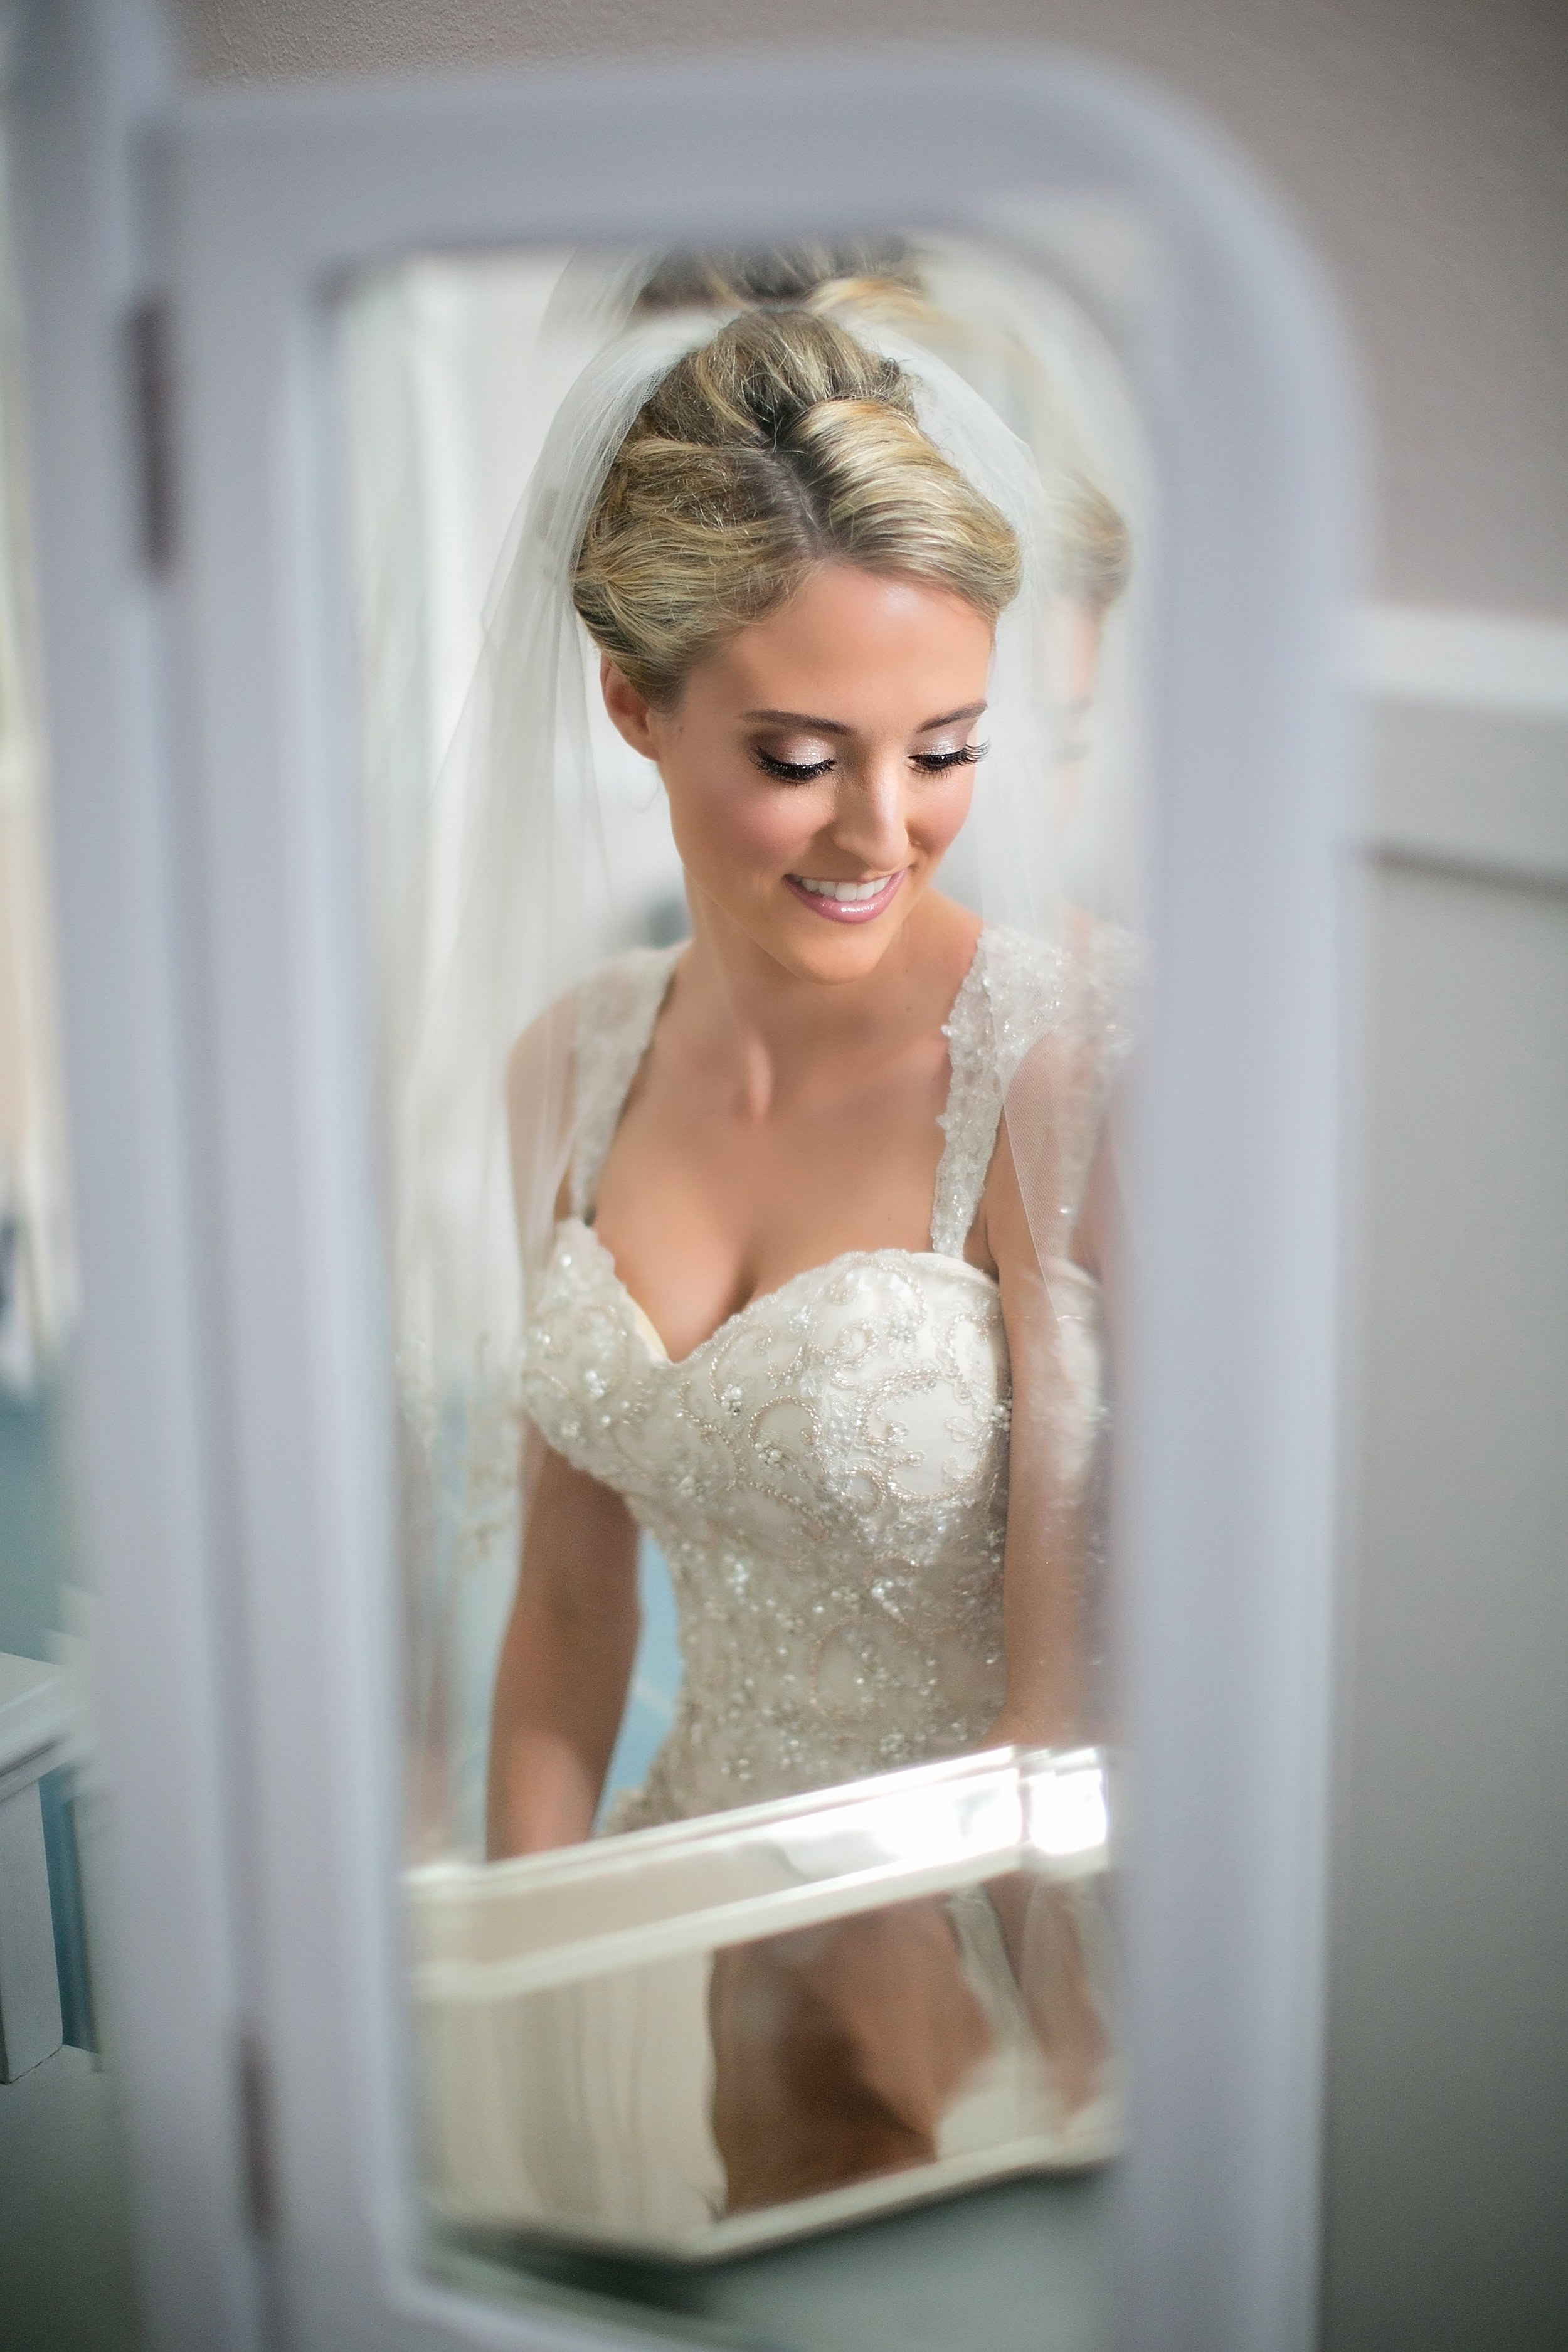 Jill is WONDERFUL at making you feel like a princess on your special wedding day!! Our wedding was in July and she made our bridesmaids look stunning on that hot summer day. She is very professional and gives great beauty advice for all the makeup lovers like myself! I HIGHLY recommend her for your big day, but move quickly she books fast!!    -Laine